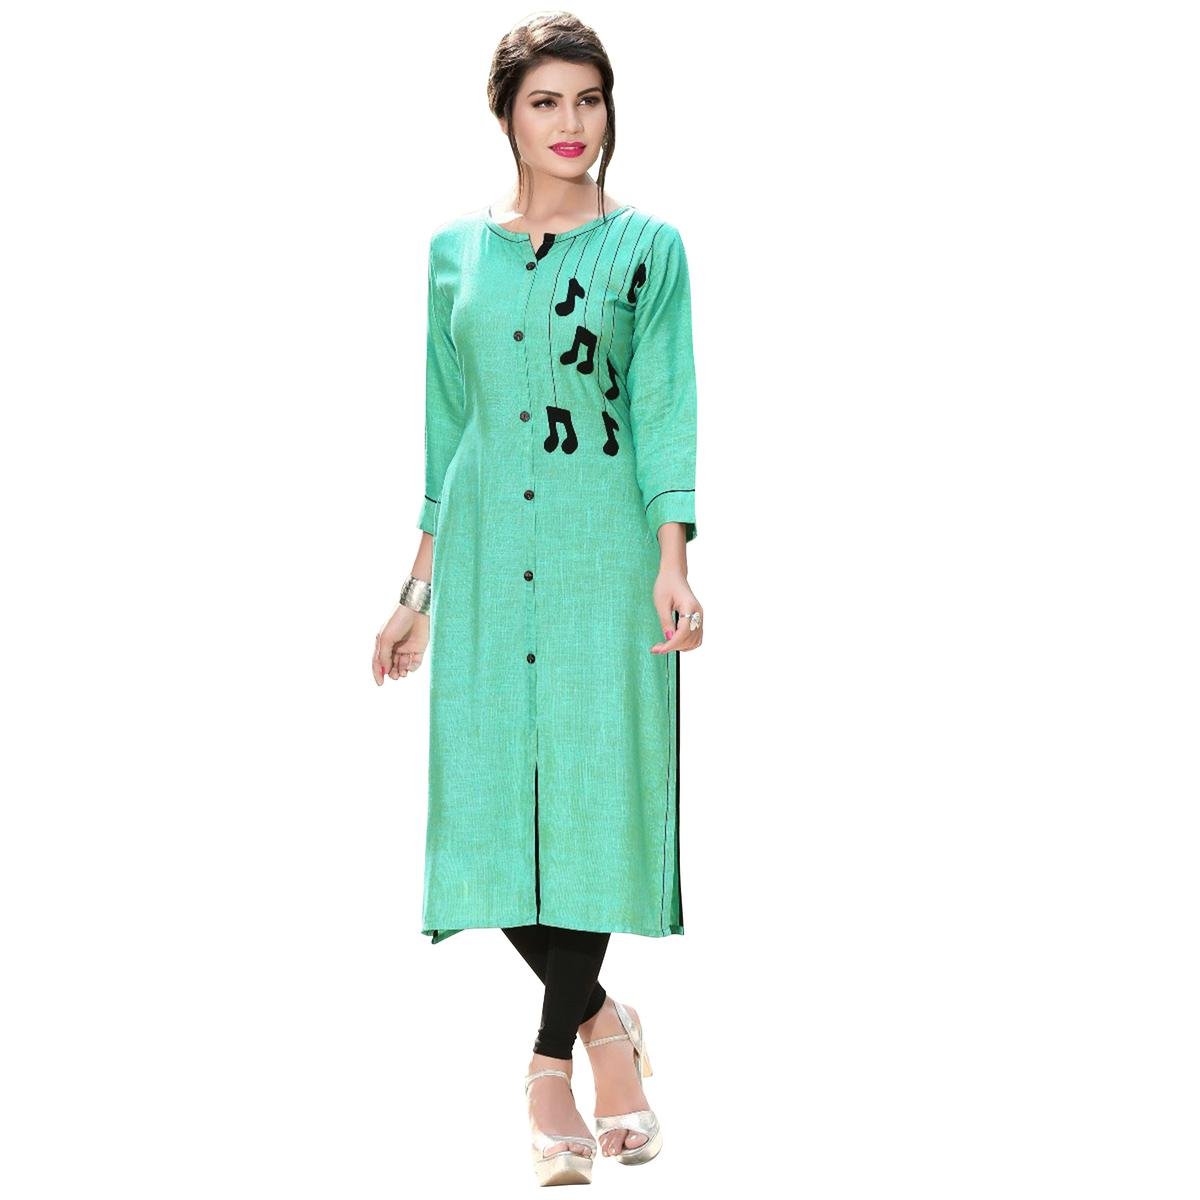 Stylish Turquoise Green Colored Casual Digital Printed Rayon Kurti